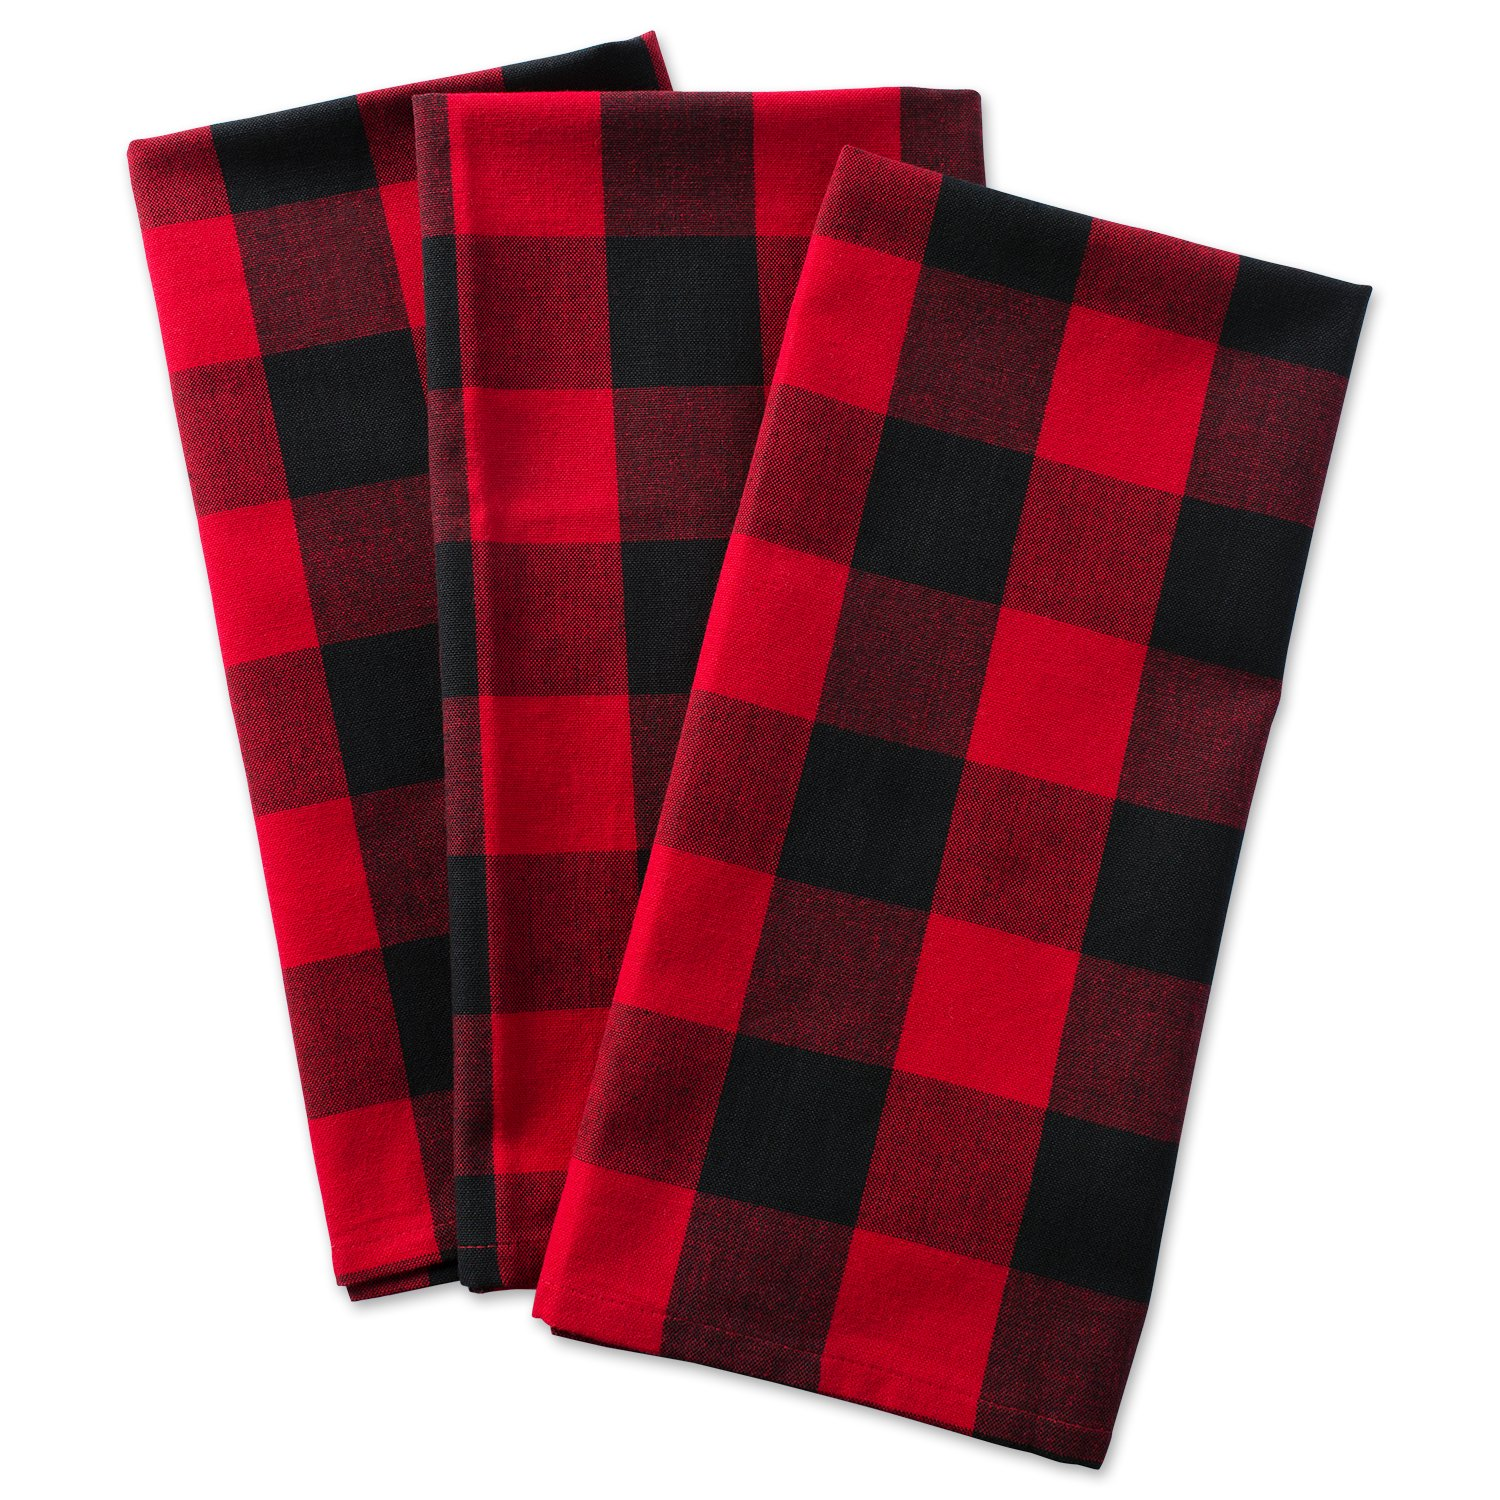 DII Cotton Buffalo Check Plaid Dish Towels, (20x30'', Set of 3) Monogrammable Oversized Kitchen Towels for Drying, Cleaning, Cooking, & Baking - Red & Black by DII (Image #1)